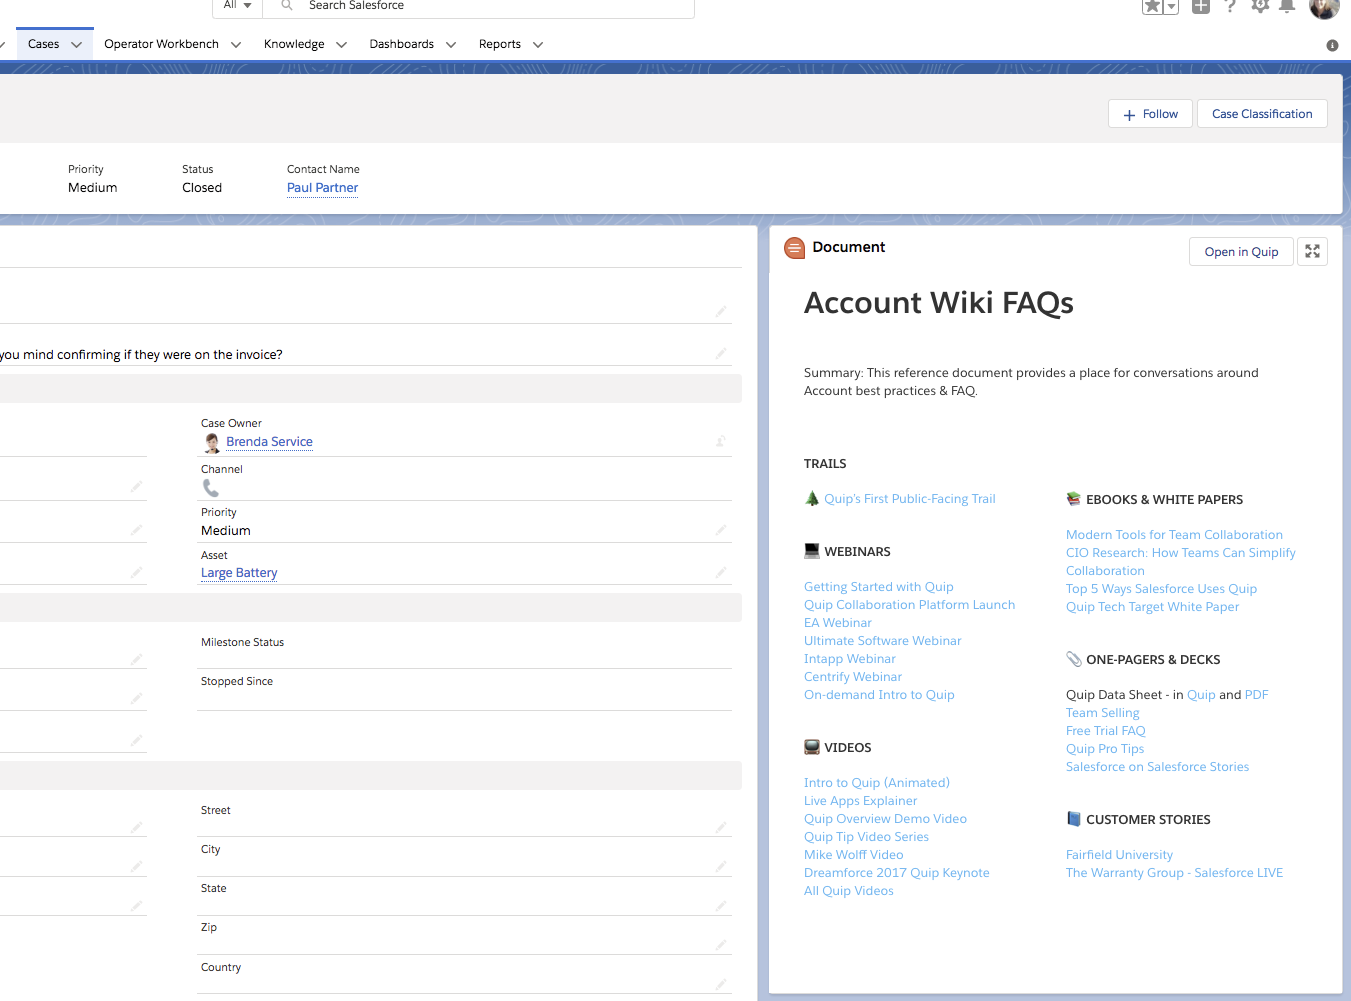 A Quip document entitled Account Wiki FAQs to the right of the standard Salesforce case record.